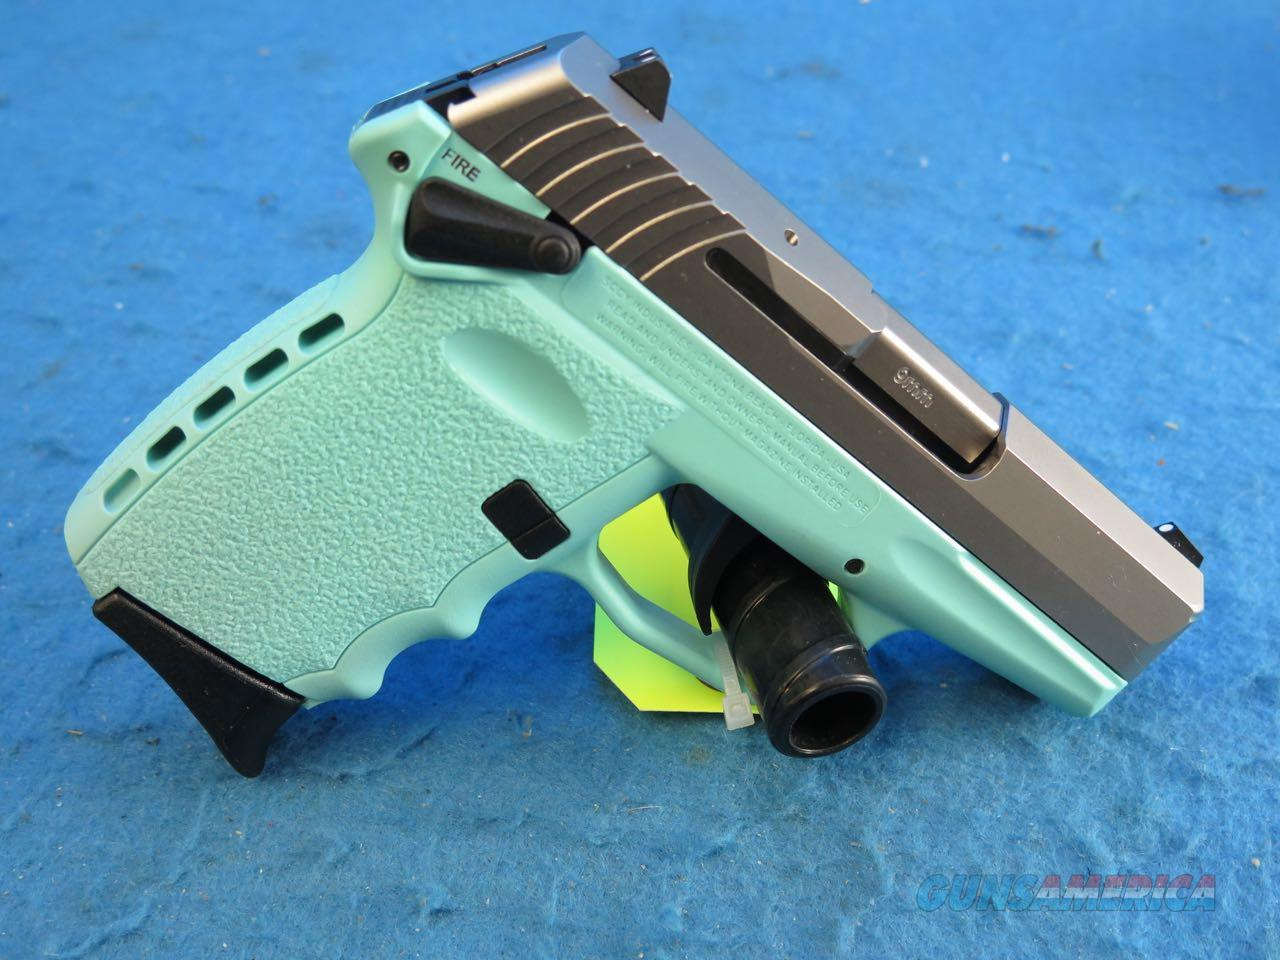 SCCY Model CPX-1 TTSB 9mm Pistol Blue/SS **New**  Guns > Pistols > SCCY Pistols > CPX1